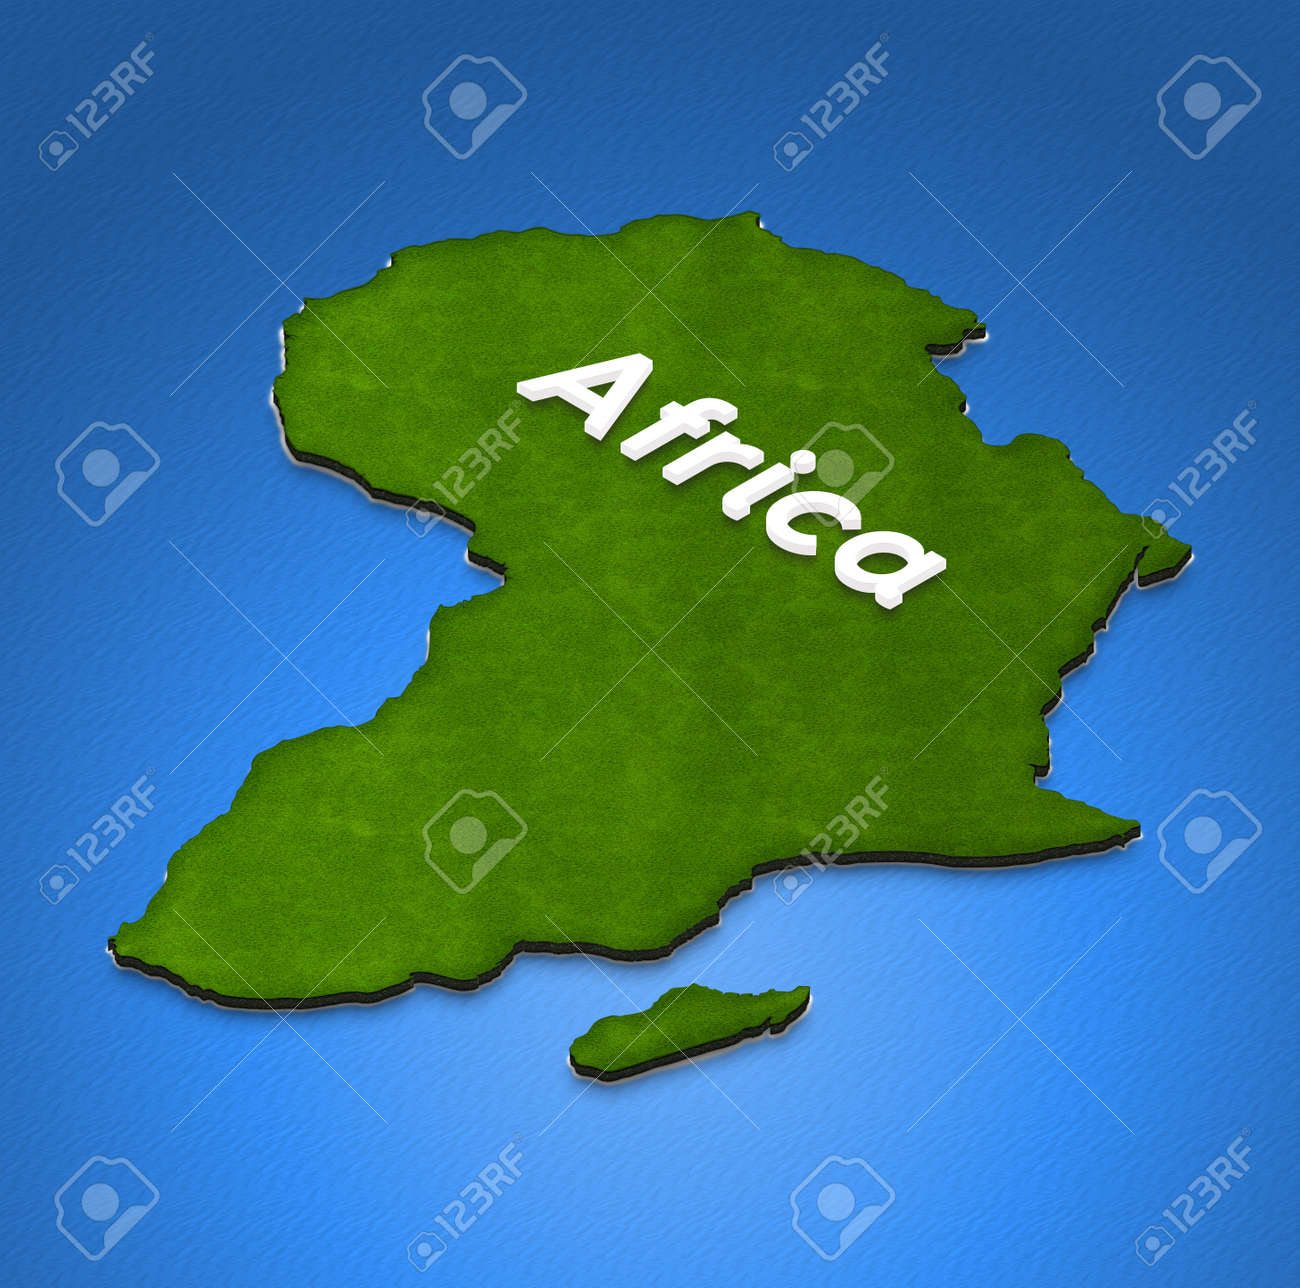 Illustration Of A Green Ground Map Of Africa On Water Background